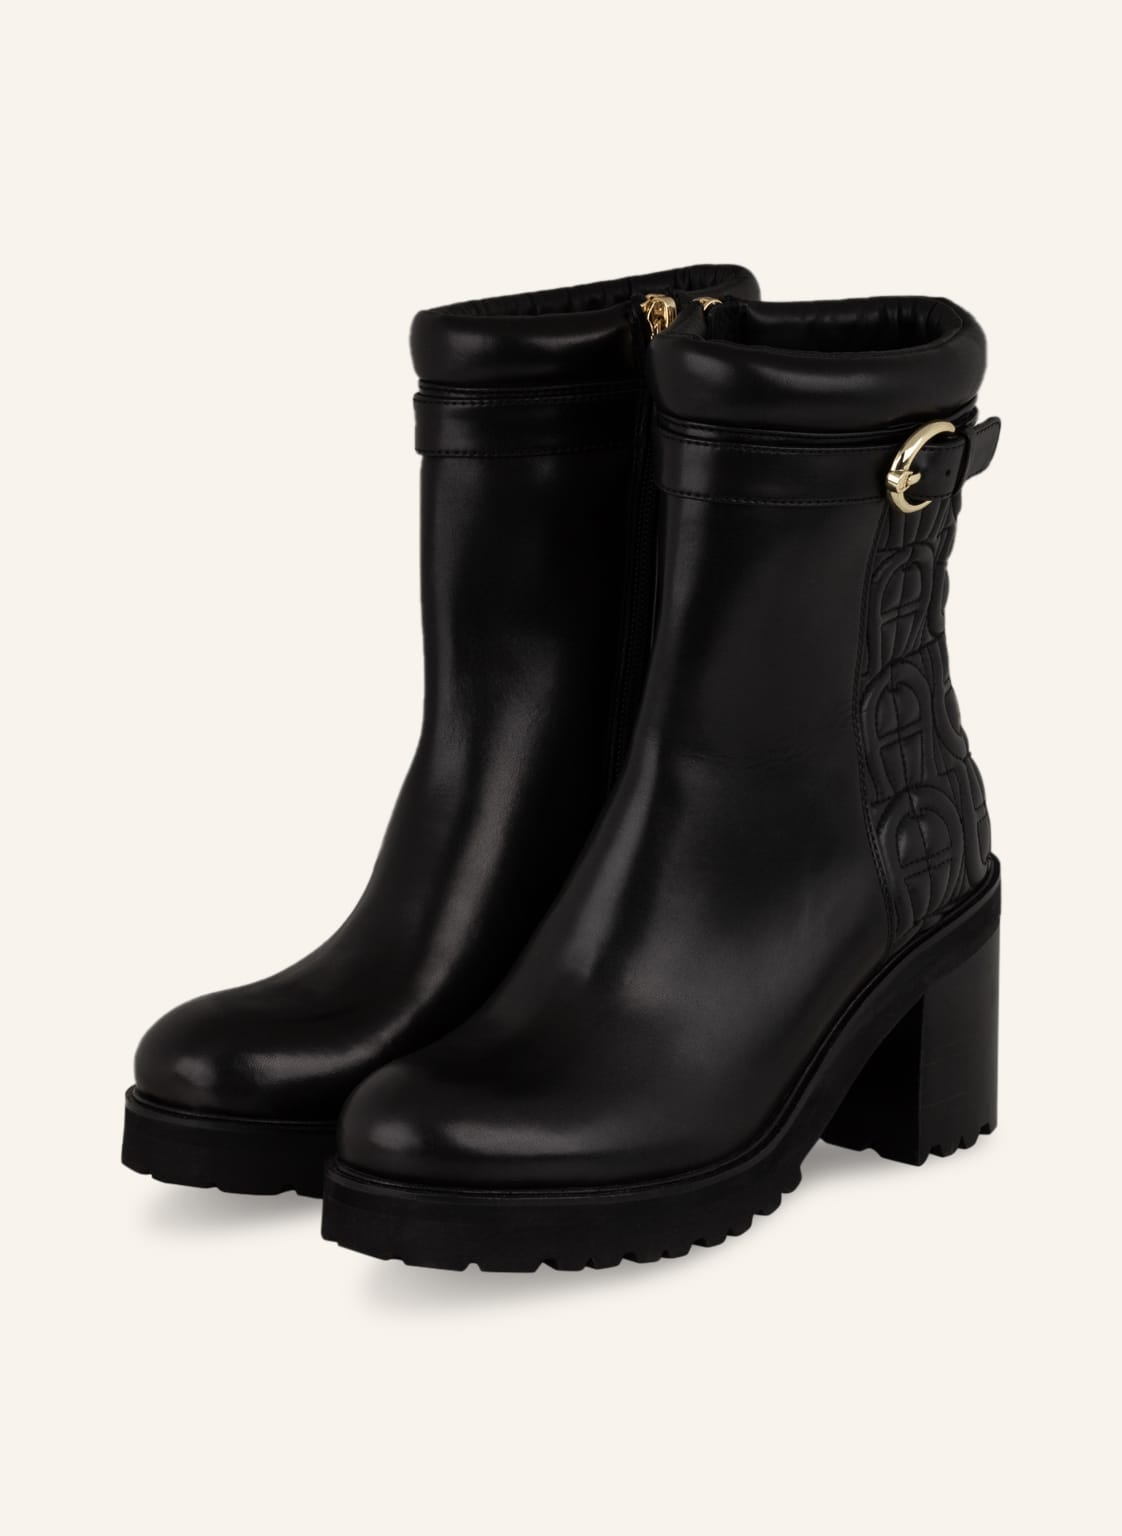 Image of Aigner Boots Amy schwarz